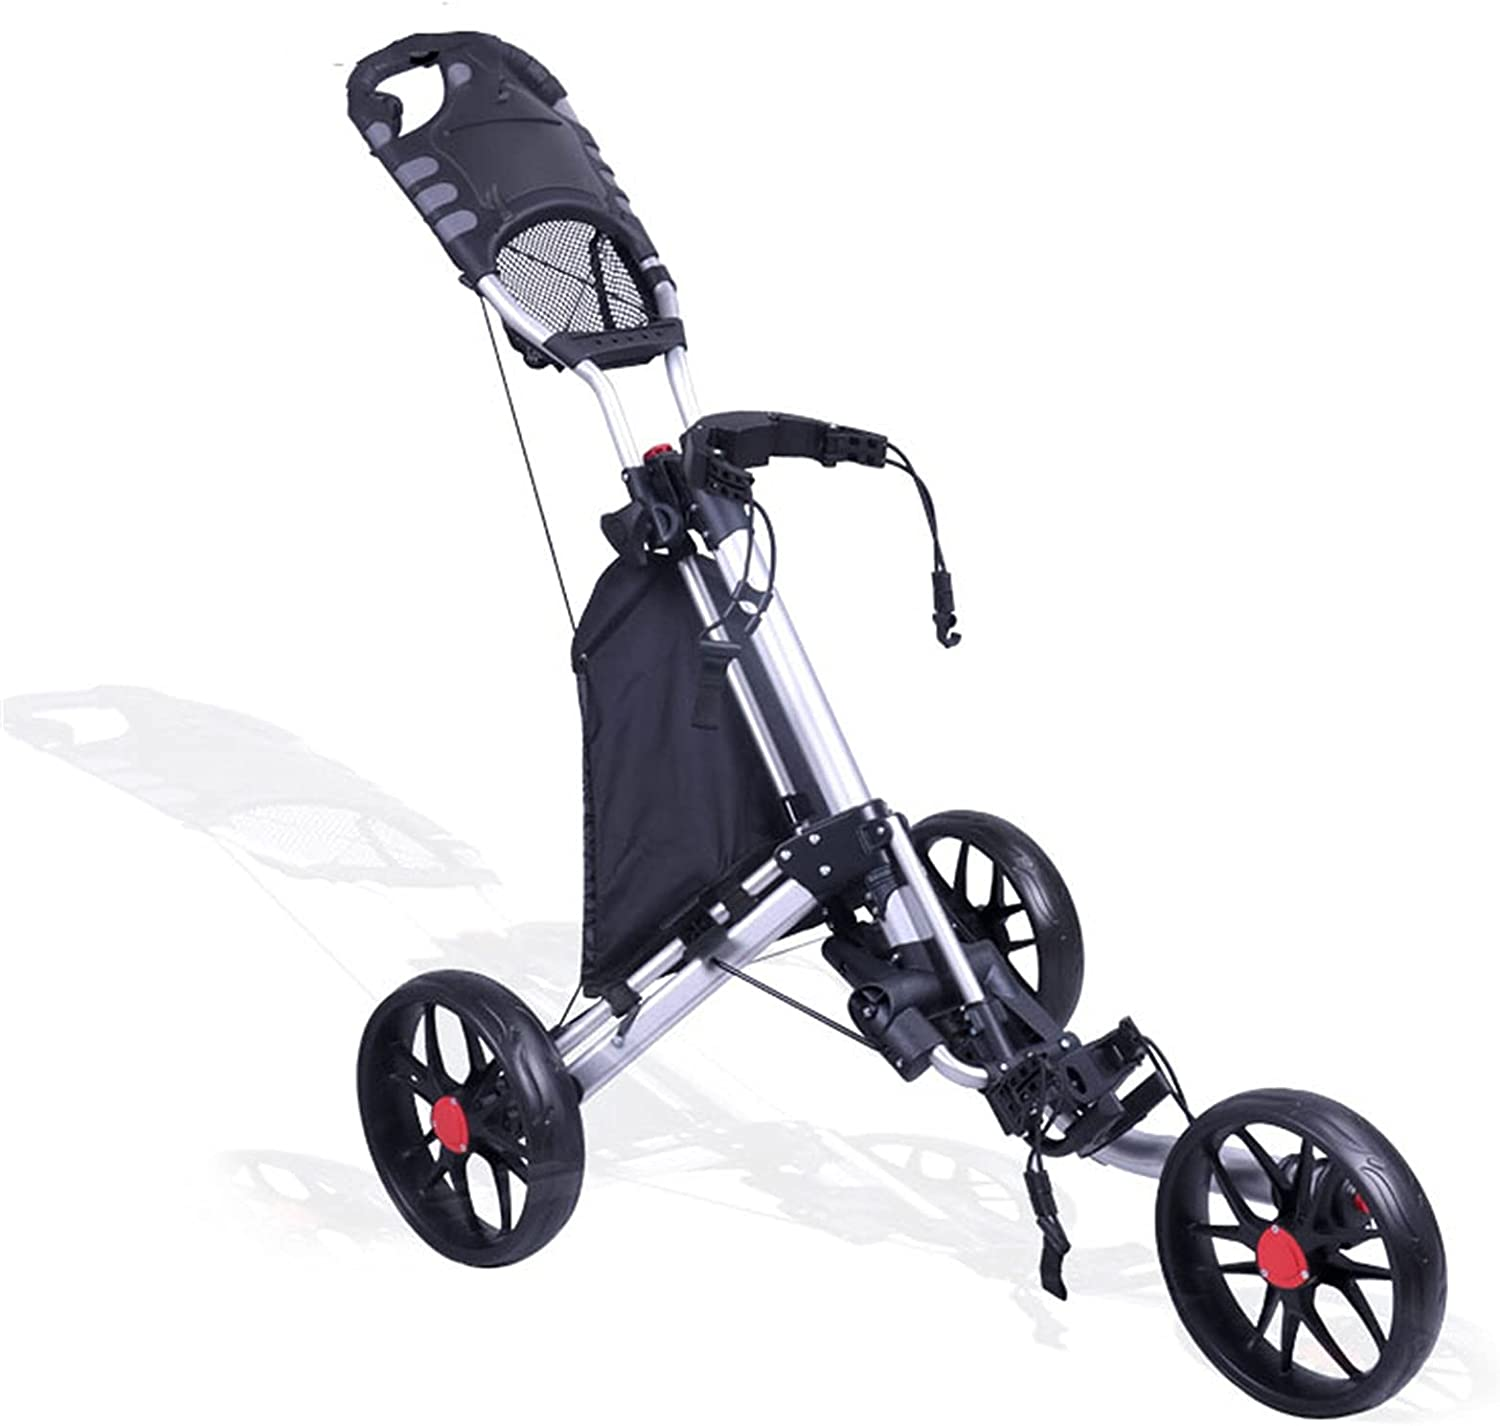 WJY Brand new Golf Push Cart High order Deluxe Aluminum Easy Frame Trolley to Op